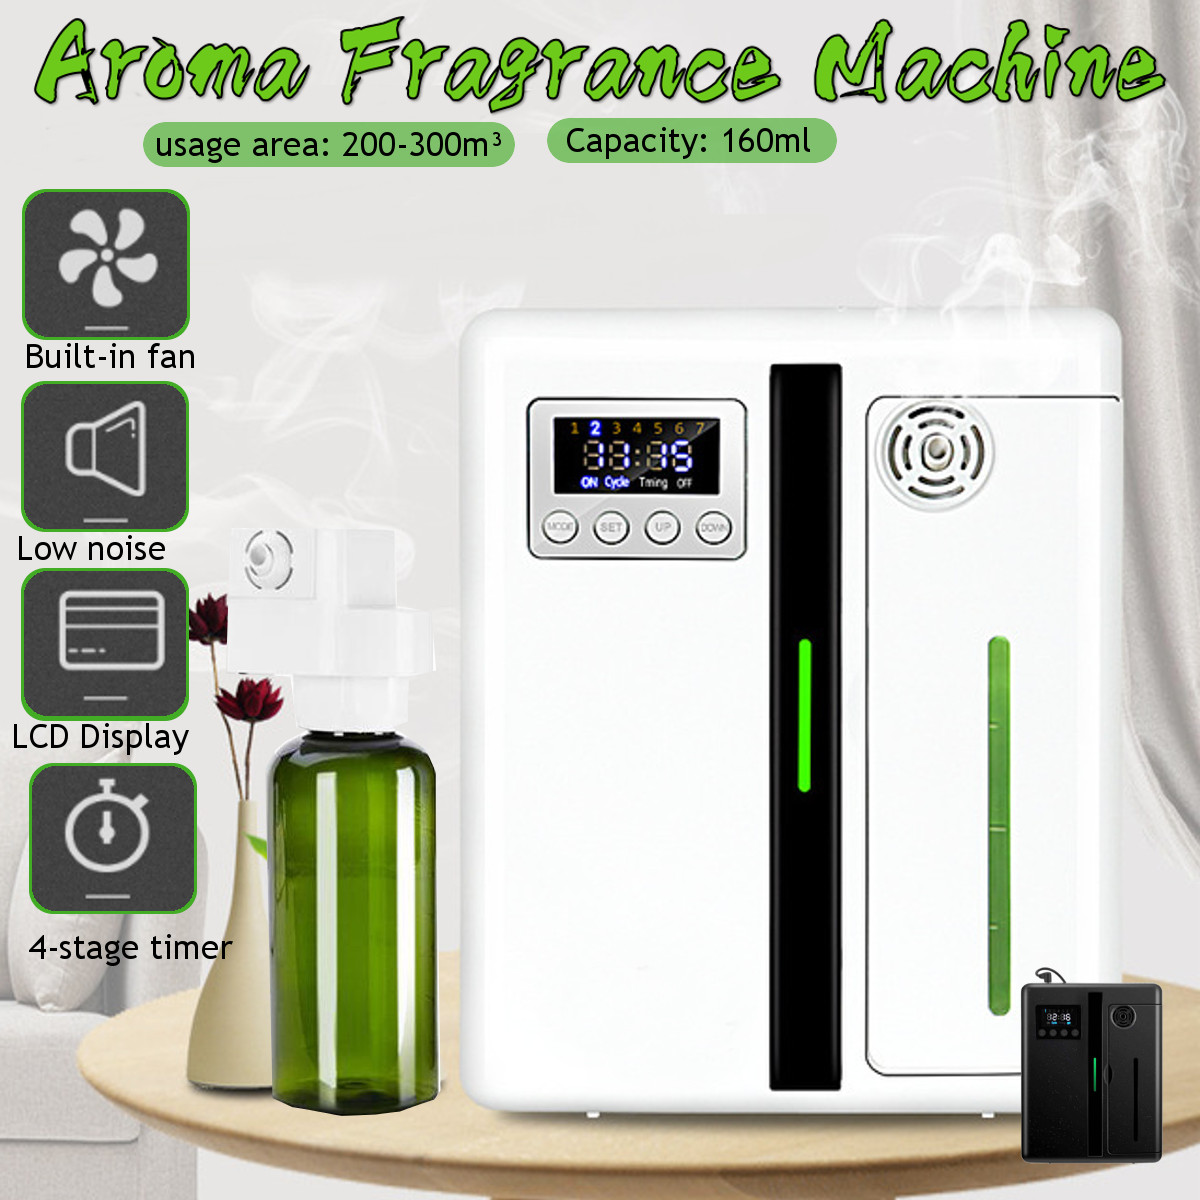 2 Colors Intelligent Aroma Fragrance Machine 160ml Timer Function Scent Unit Essential Oil Aroma Diffuser For Home Hotel Office